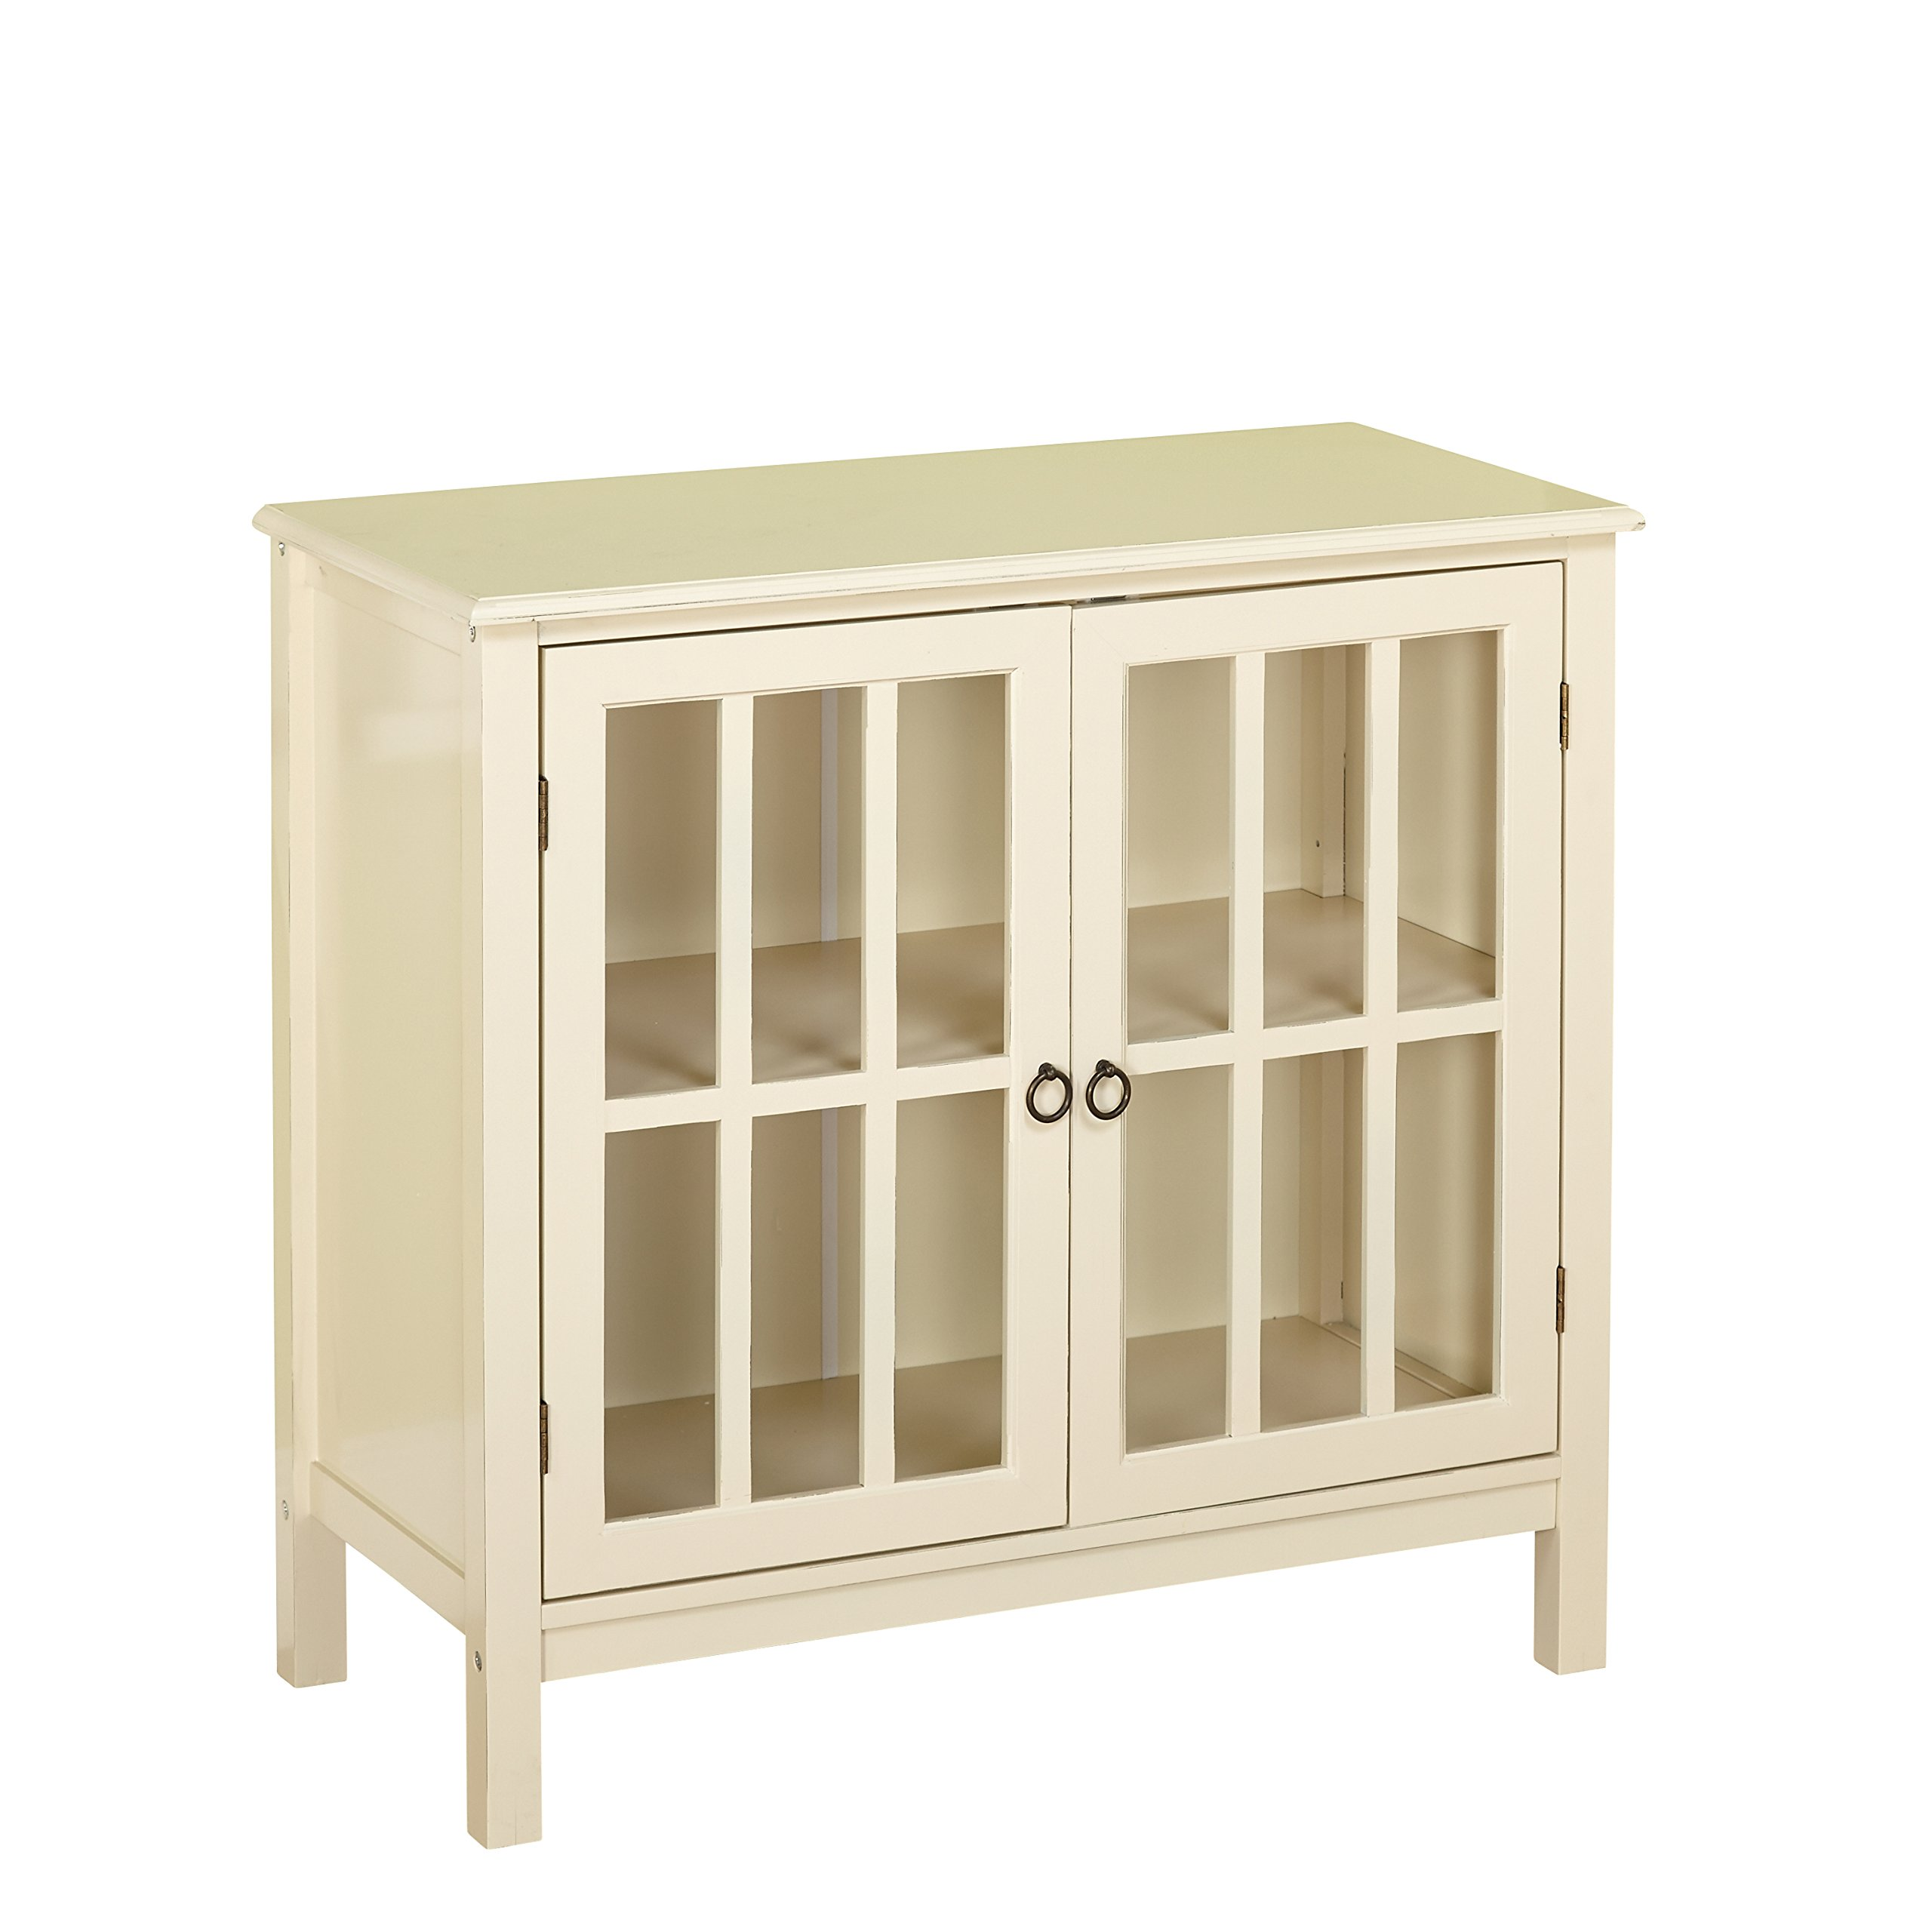 Target Marketing Systems Portland Collection Contemporary China Kitchen Cabinet with Glass Cabinet and One Shelf, Antique White by Target Marketing Systems